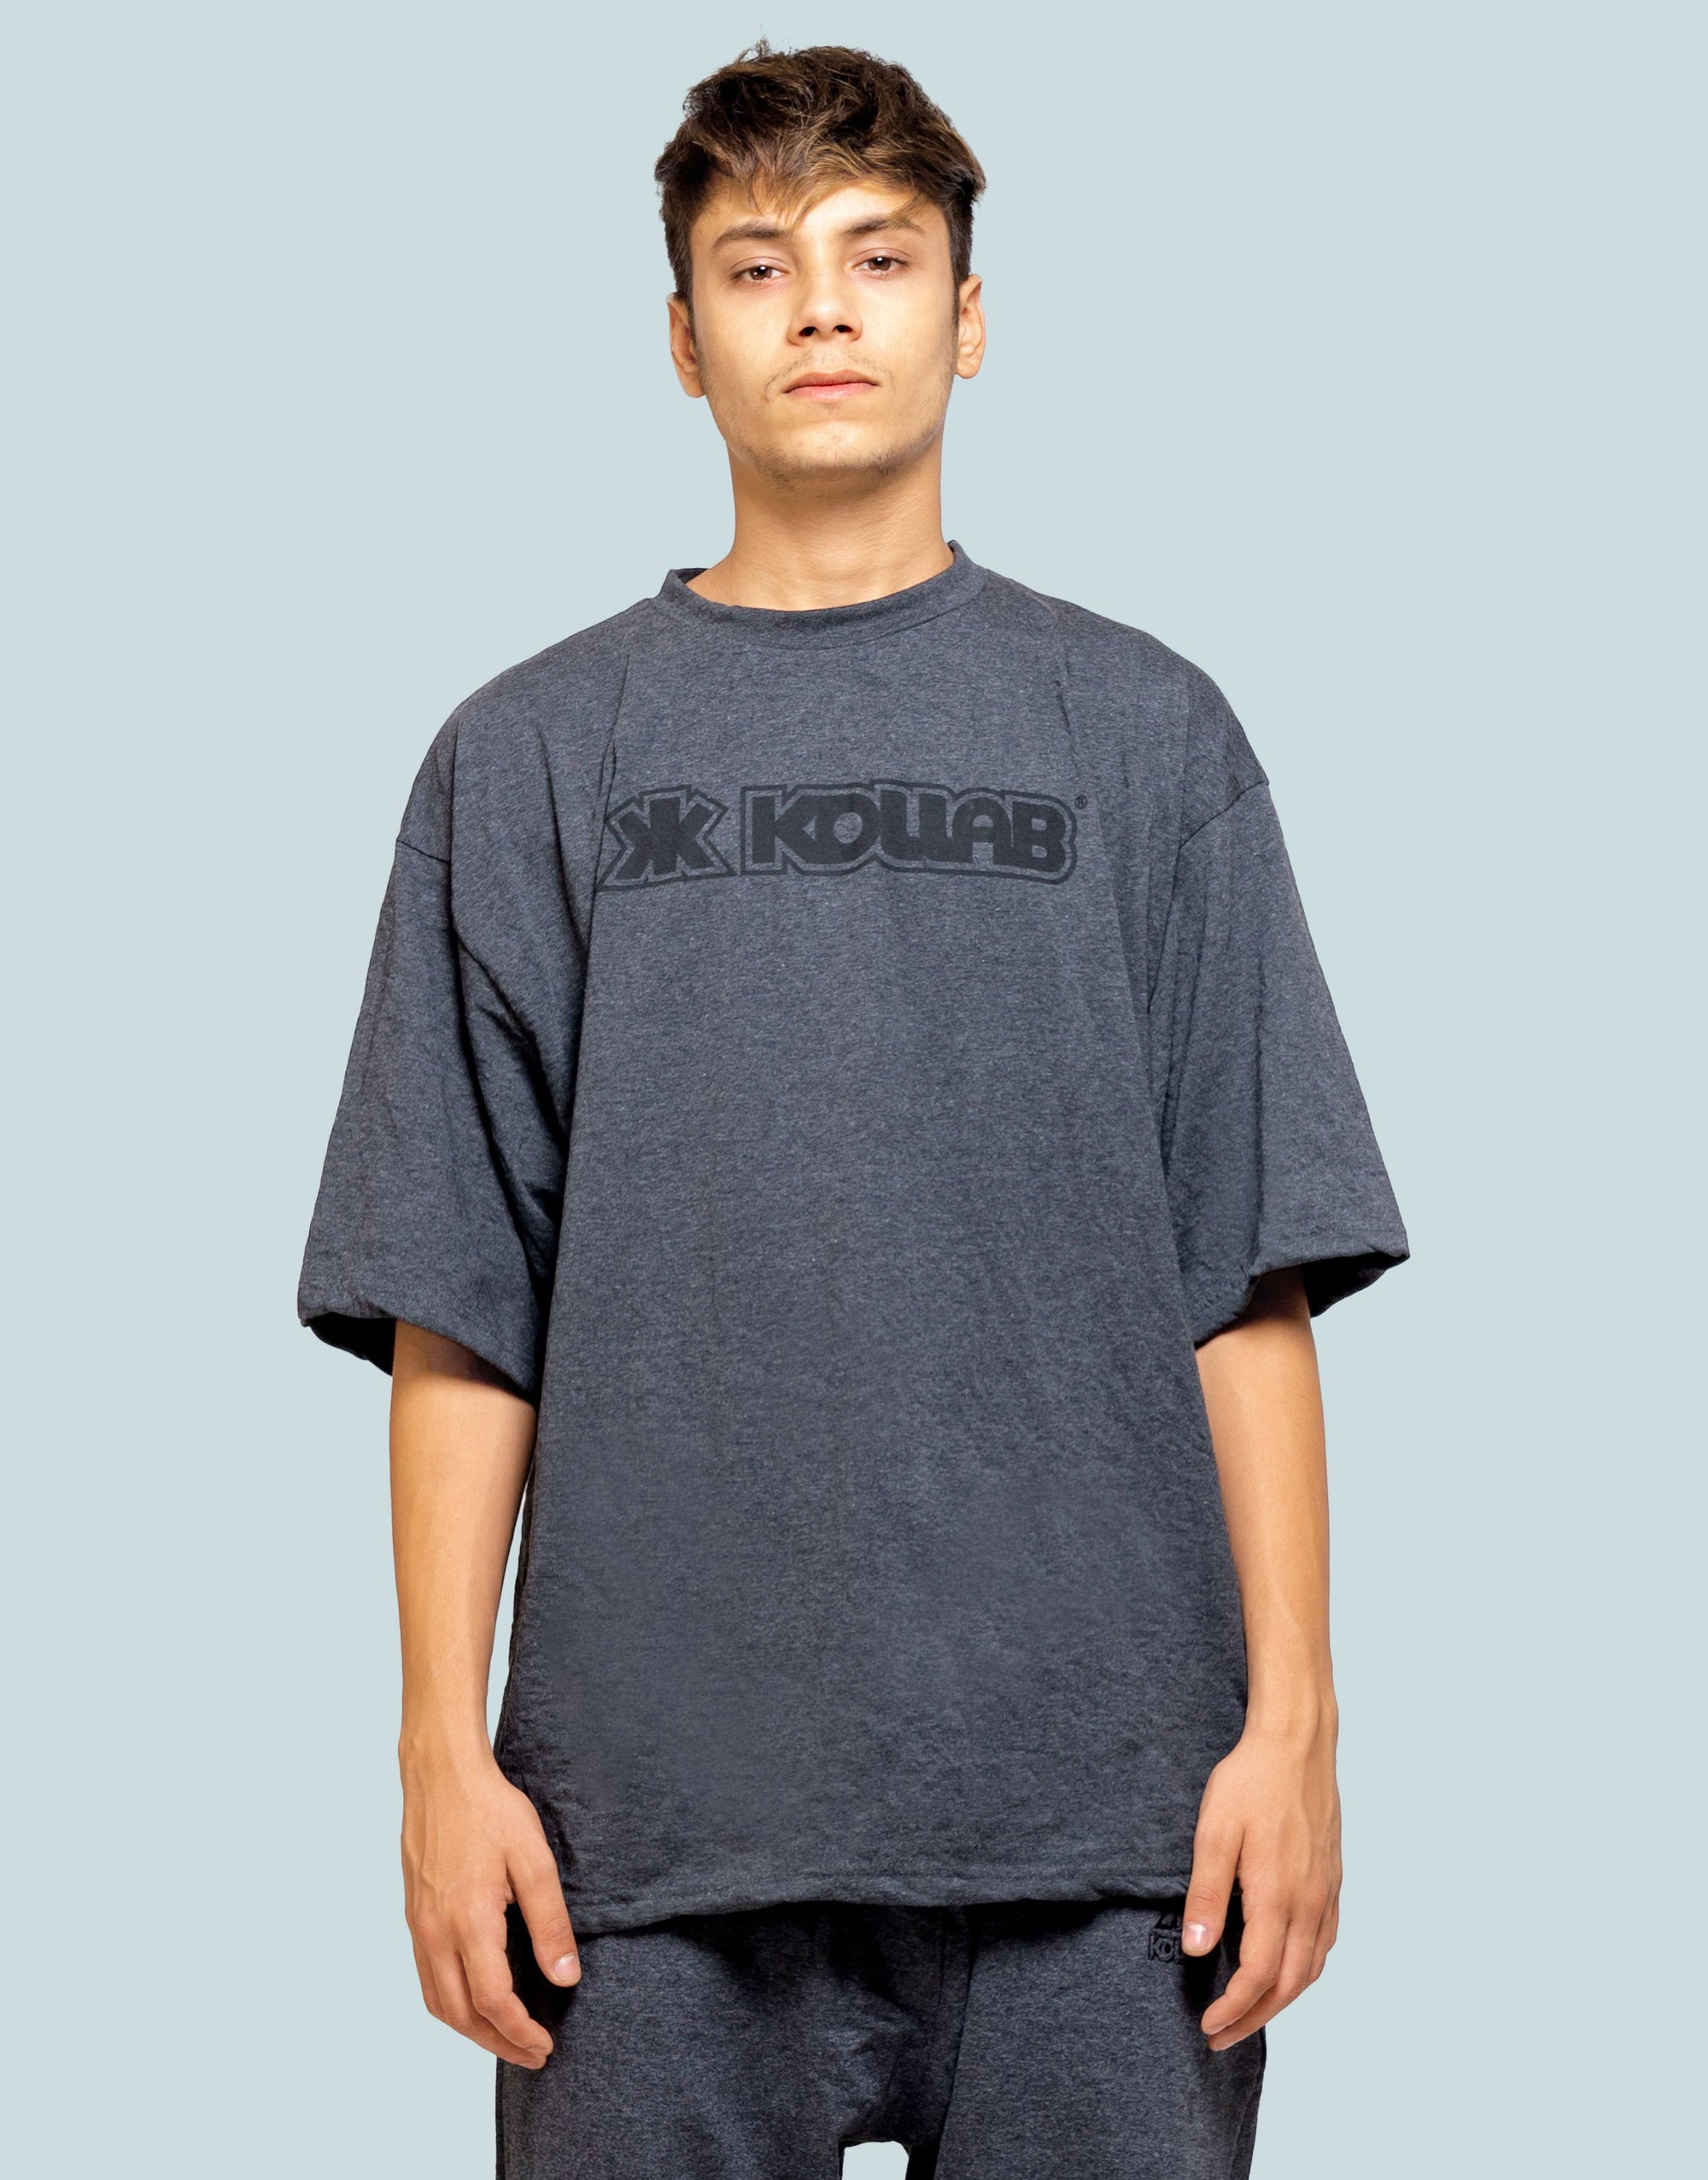 Kollab® Worldwide Oversize T-Shirt - Charcoal Grey-Black | Kollab Lifestyle | www.kollablifestyle.com